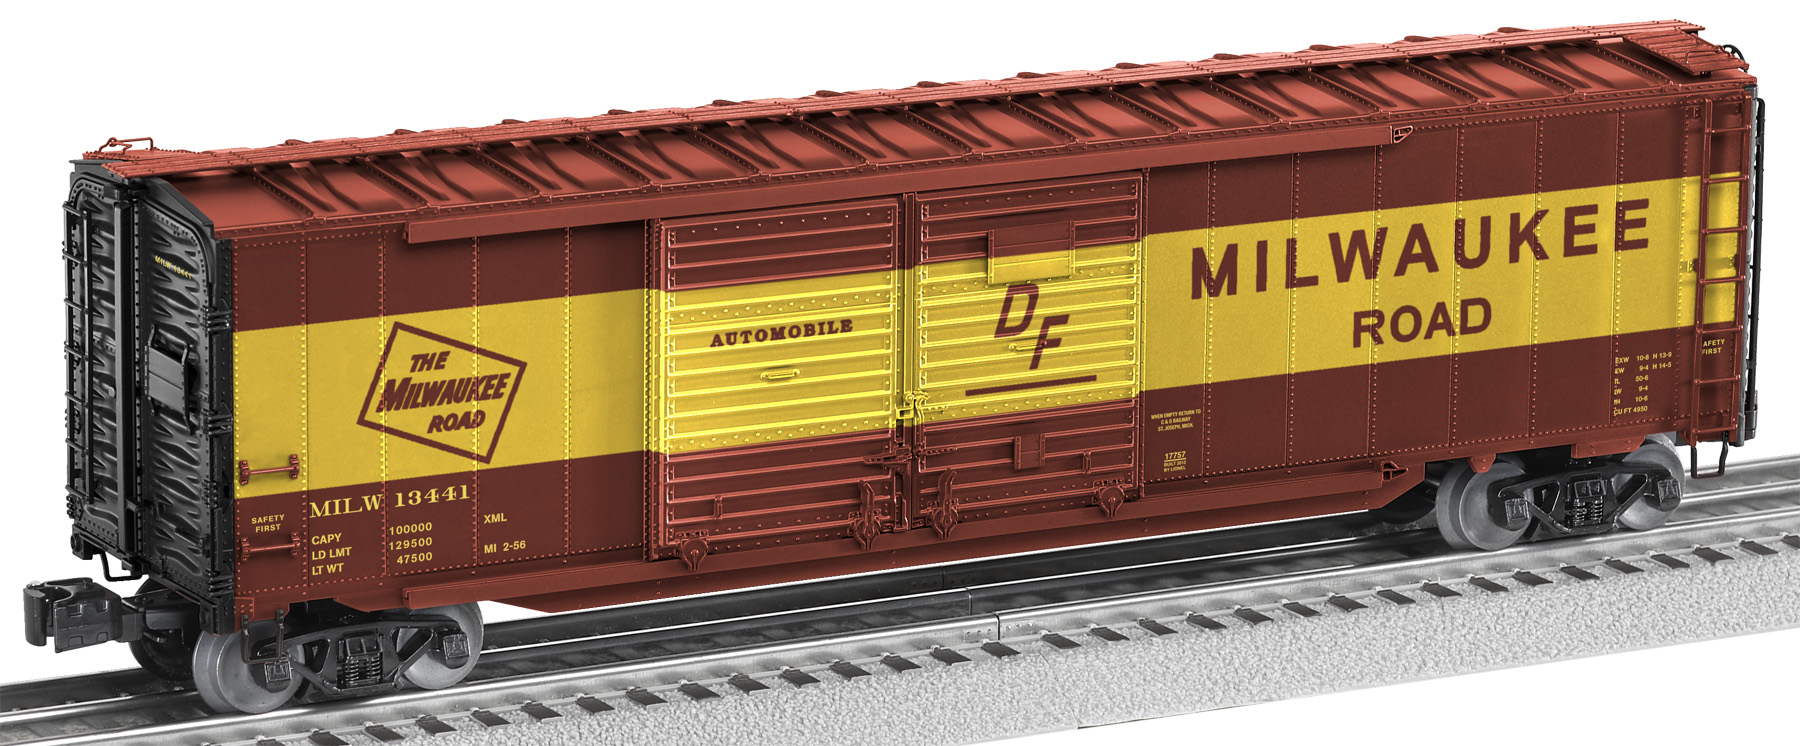 freight car friday end door boxcars lionel trains. Black Bedroom Furniture Sets. Home Design Ideas